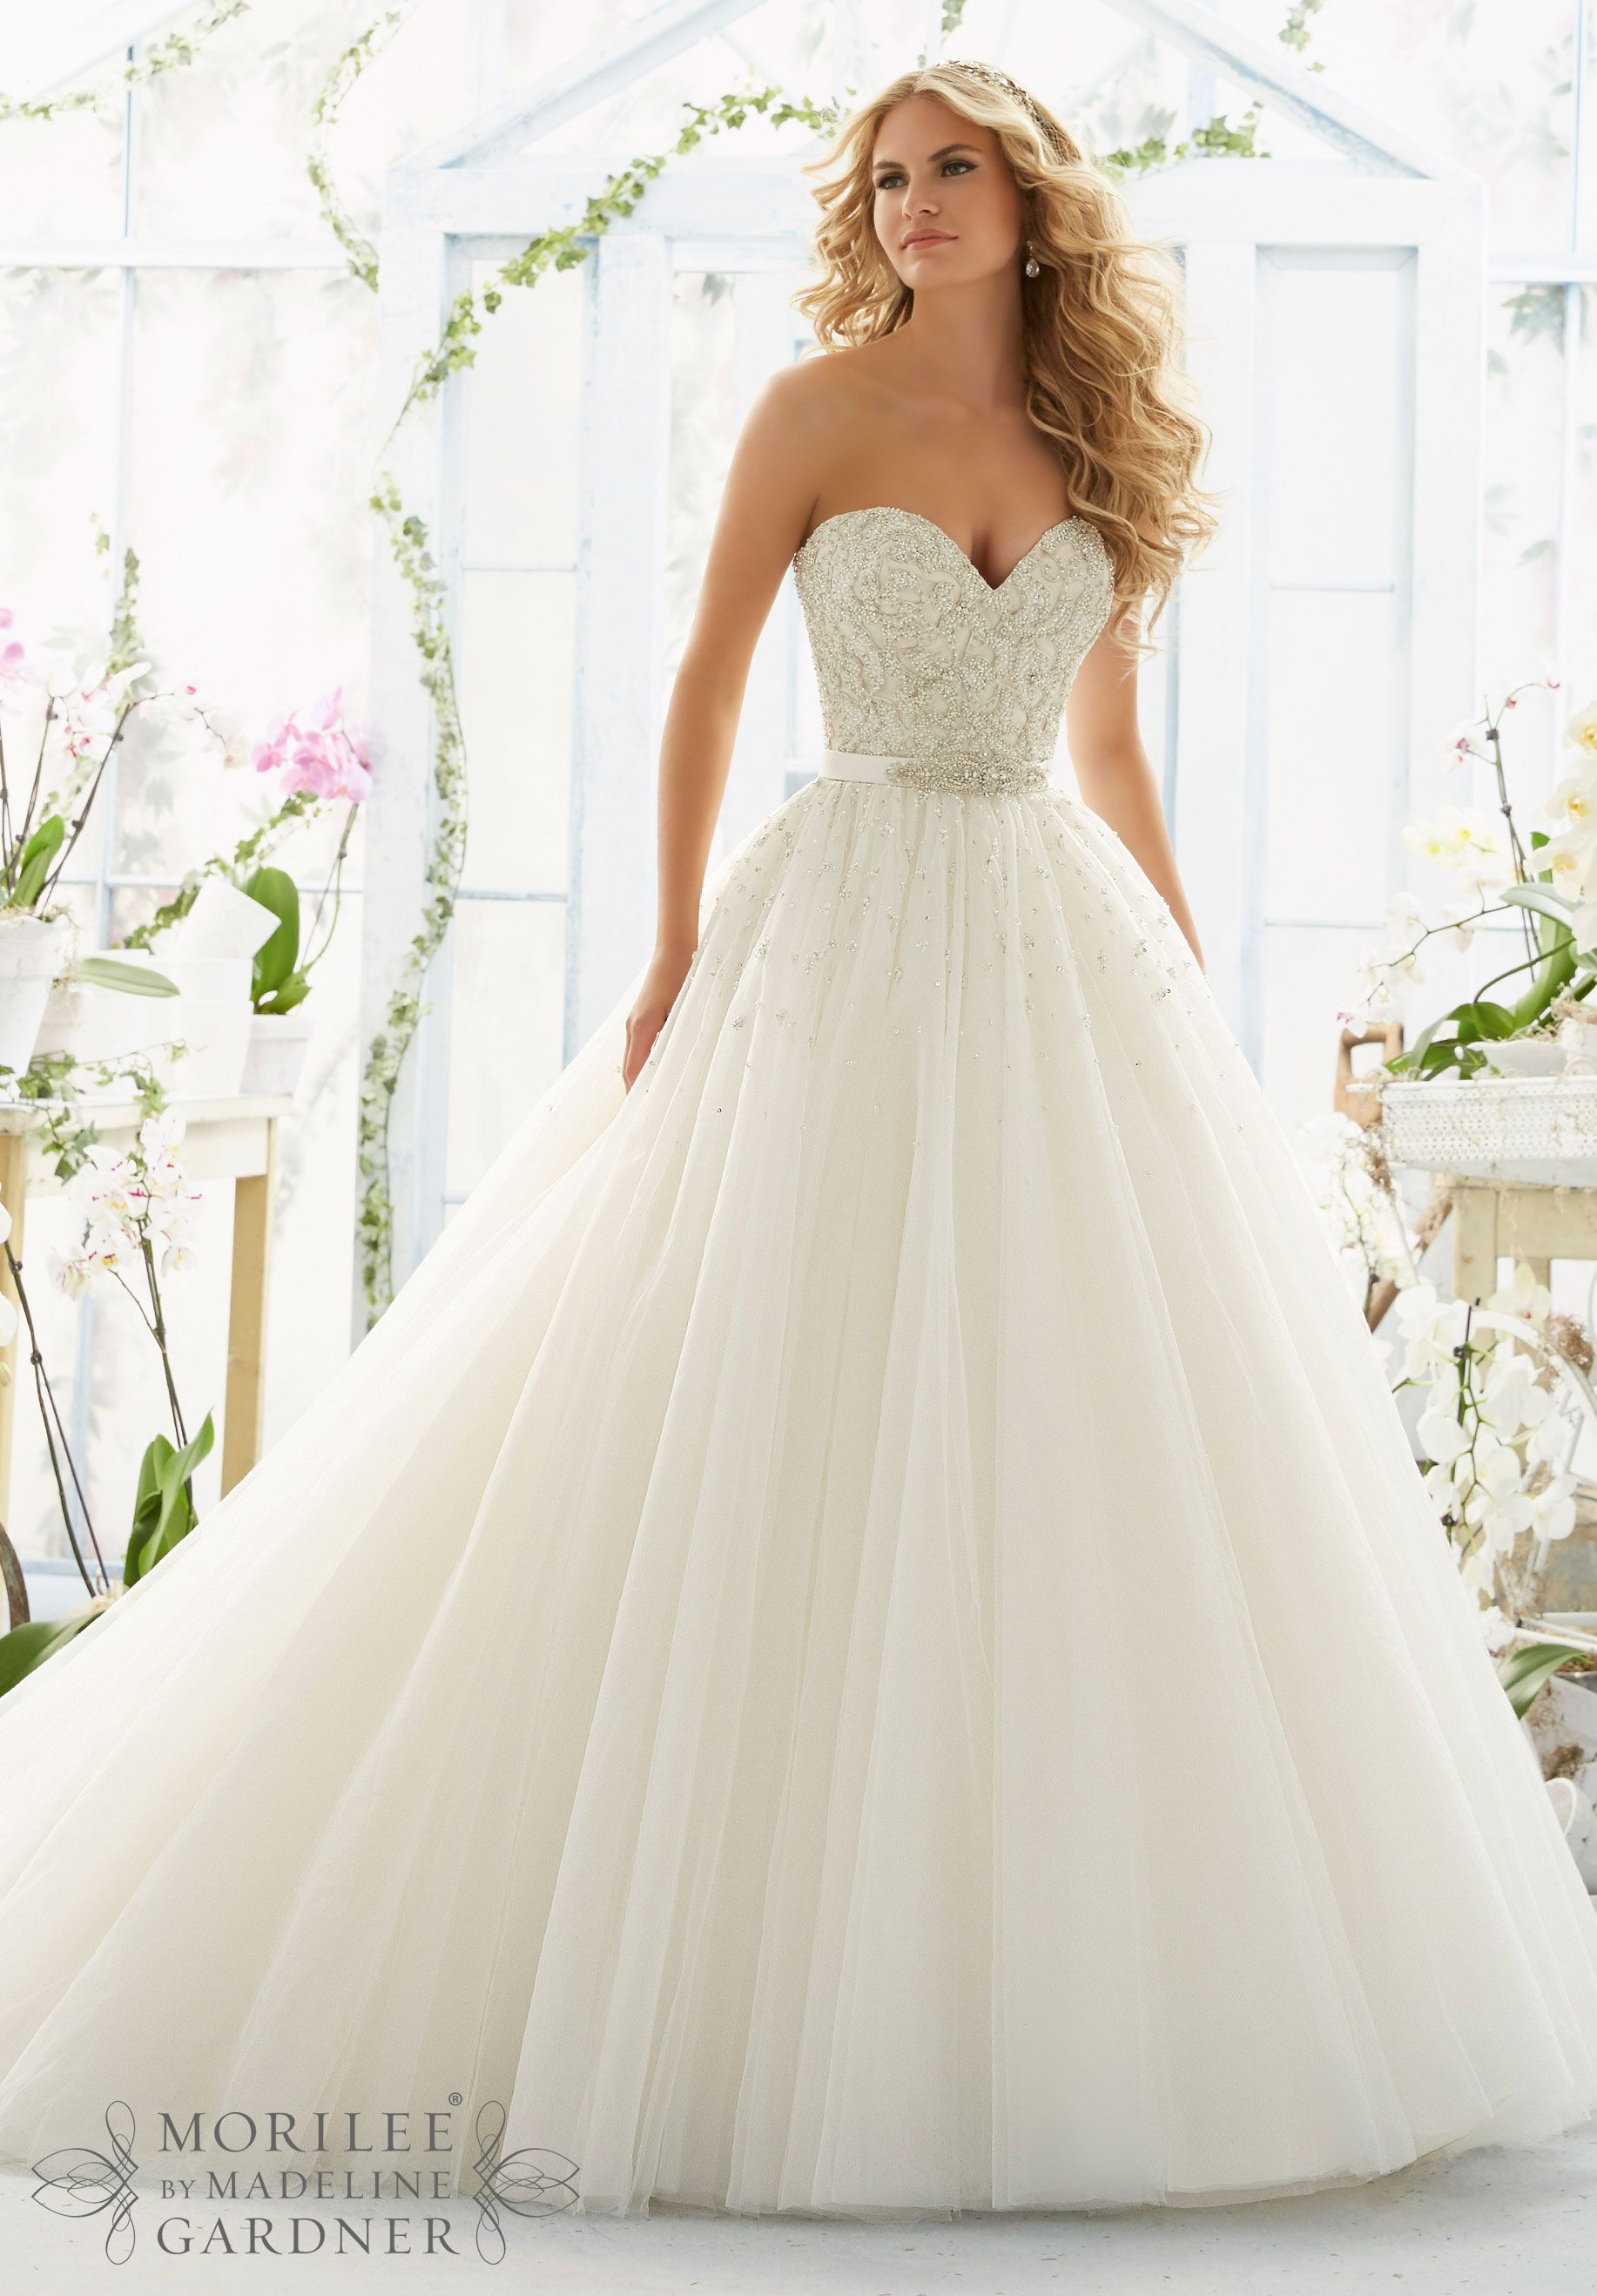 ball gown wedding dress Mori lee Wedding Dresses and Wedding Gowns by Morilee featuring Pearl and Diamante Beading on Laser Cut Embroidery onto a Tulle Ball Gown Removable